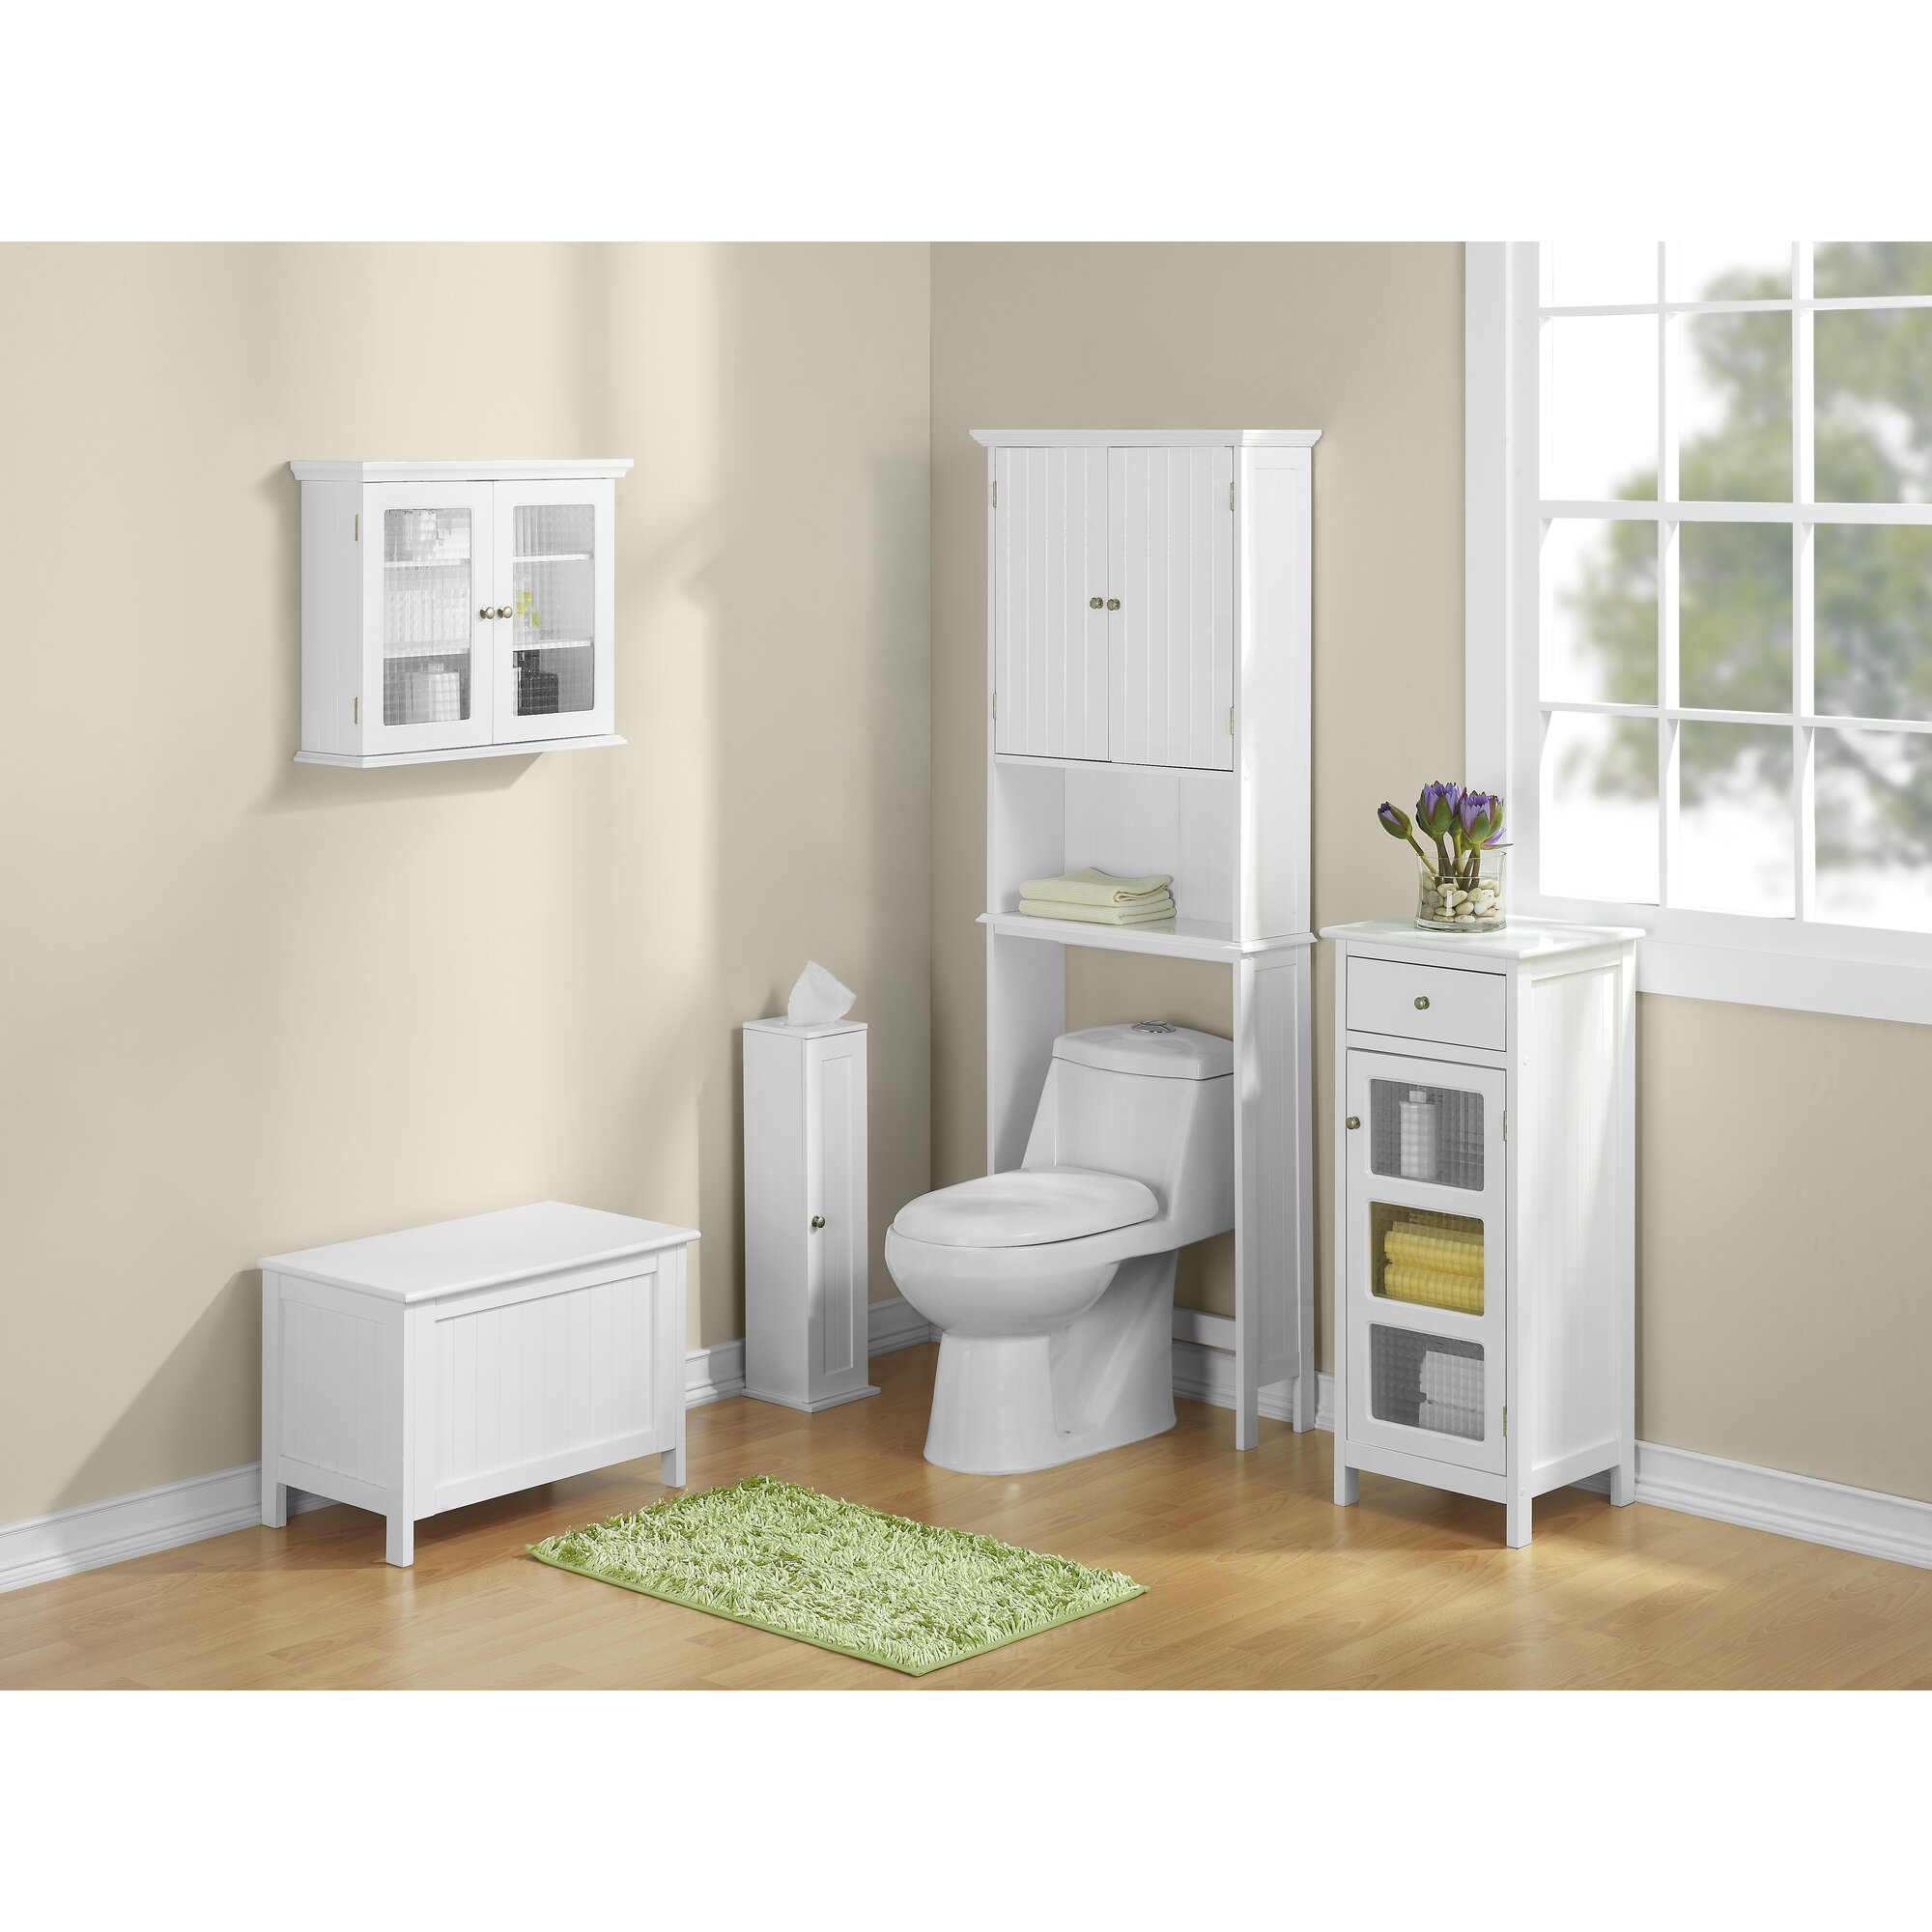 Jenlea Bathroom Space Saver 24 5 W X 62 5 H Over The Toilet Storage Reviews Wayfair